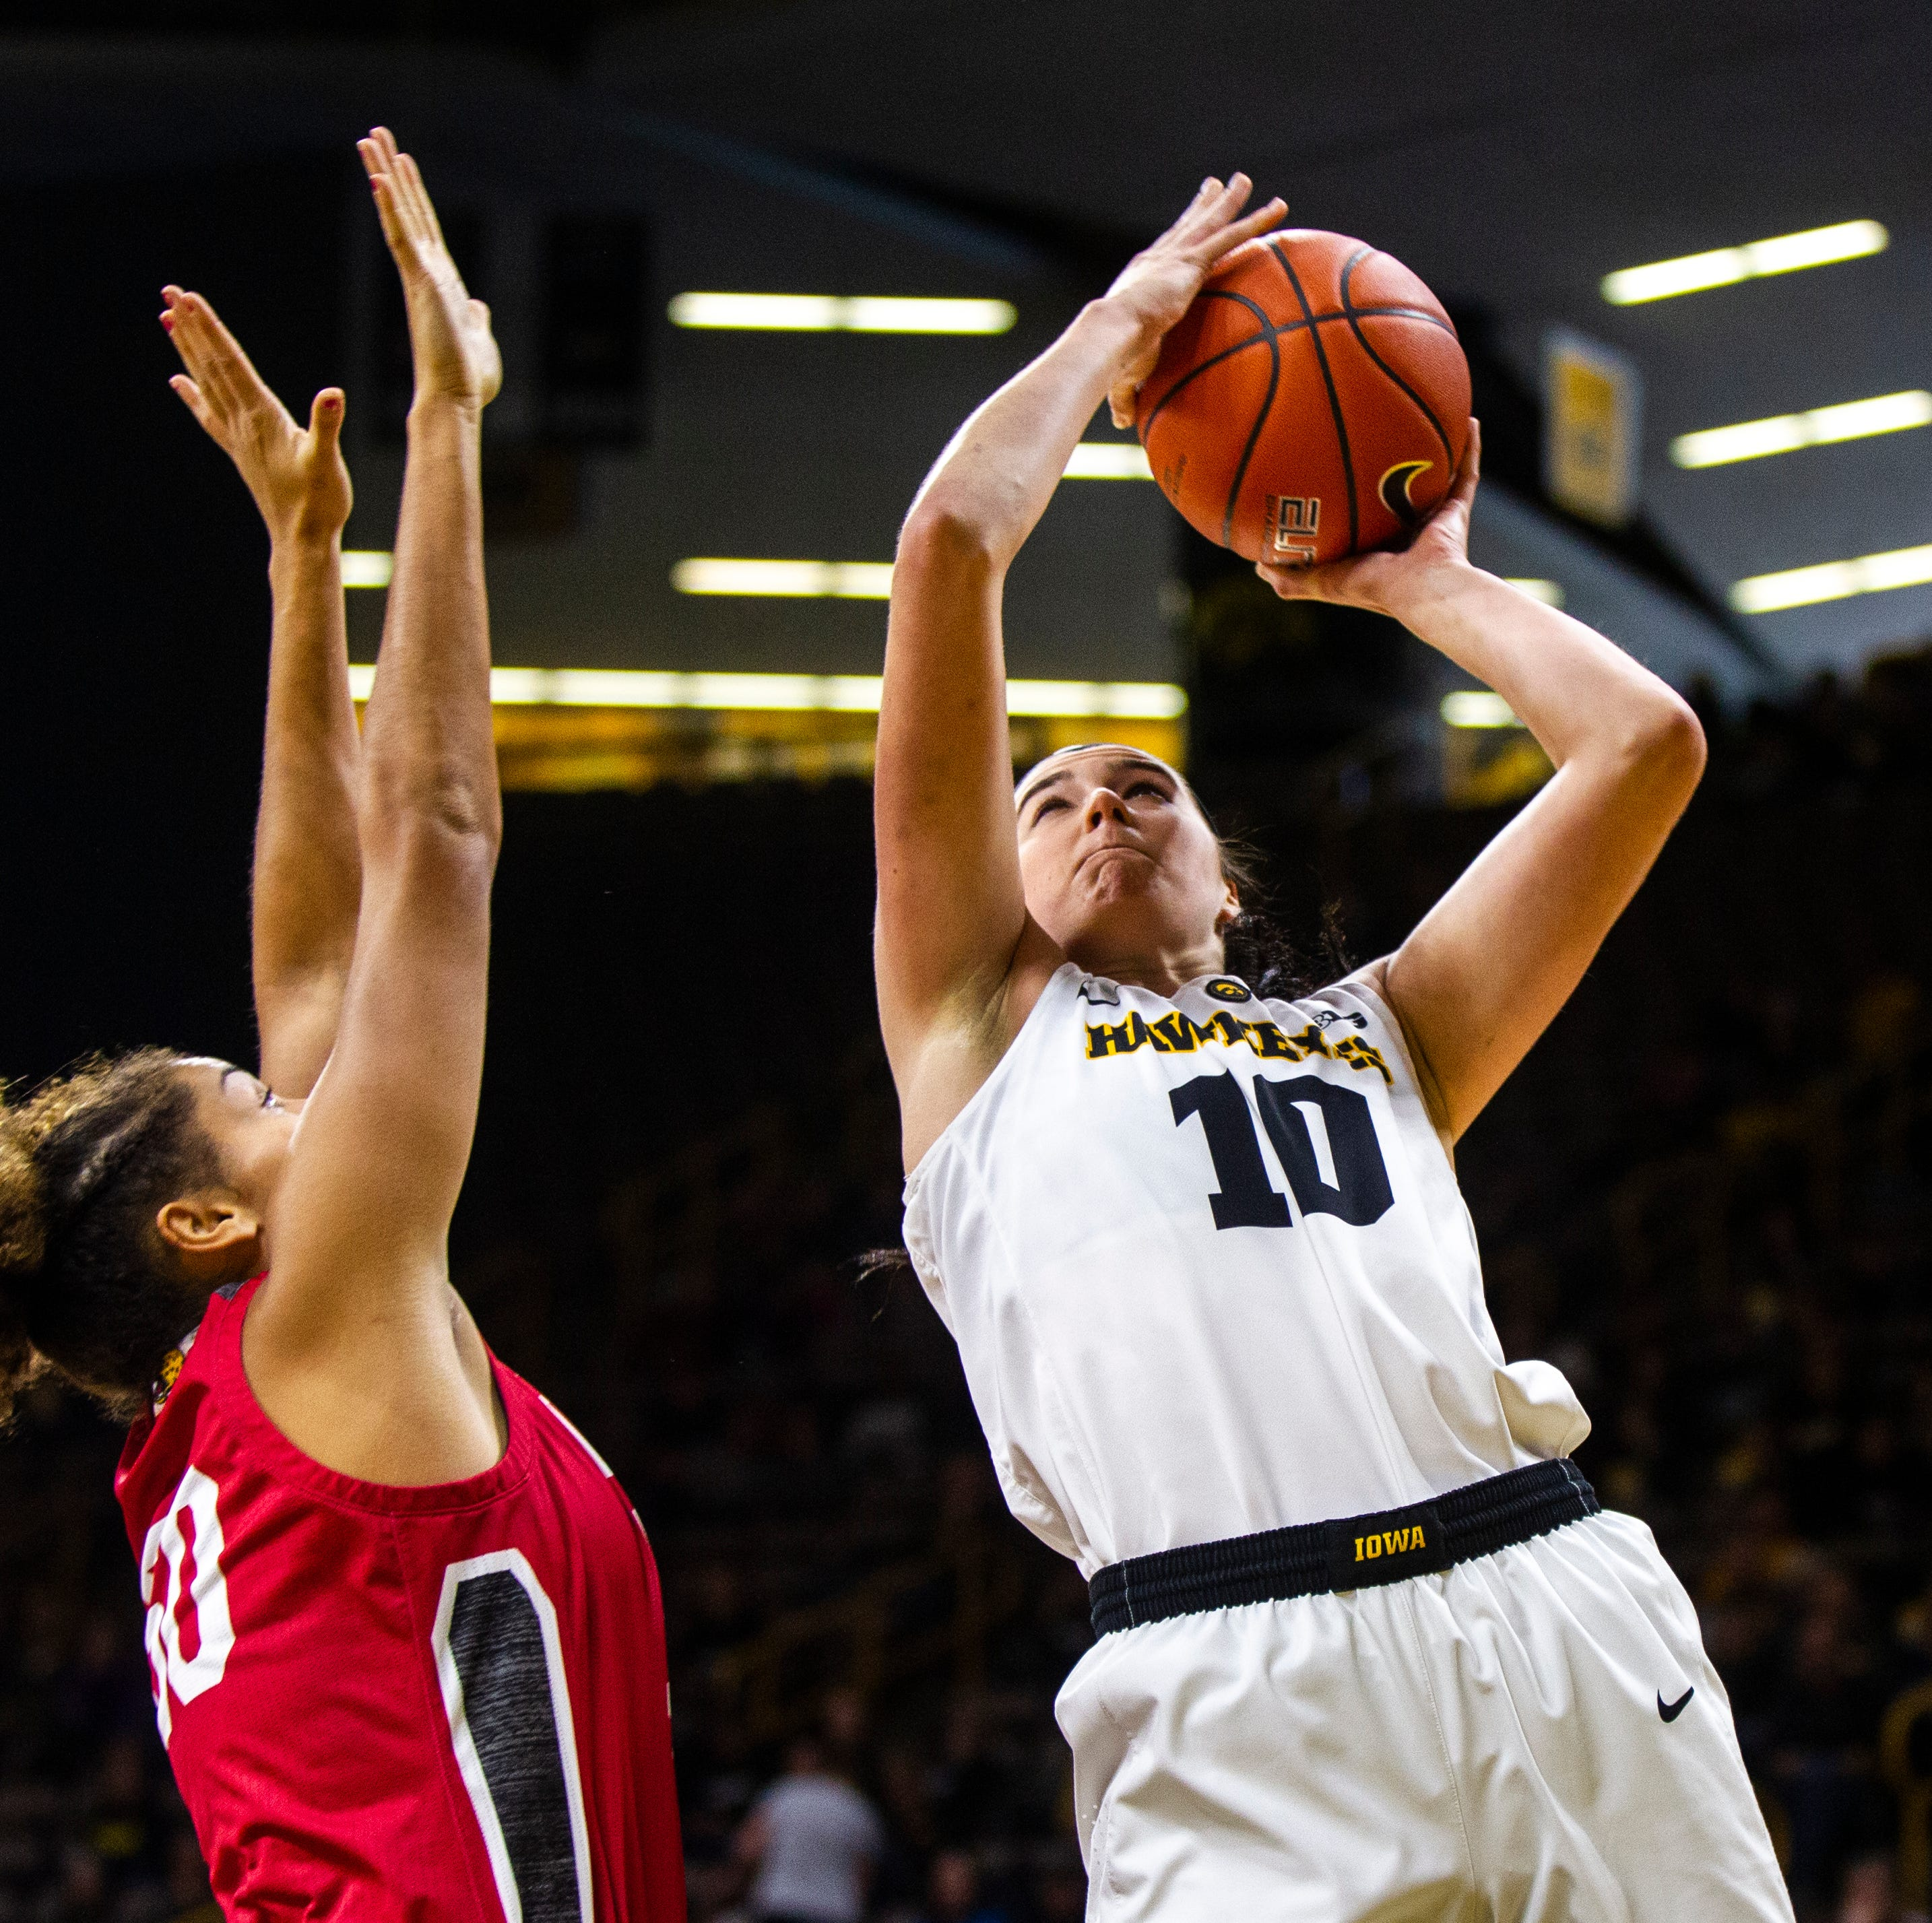 Iowa women's basketball: Megan Gustafson, No. 16 Hawkeyes grind past IUPUI